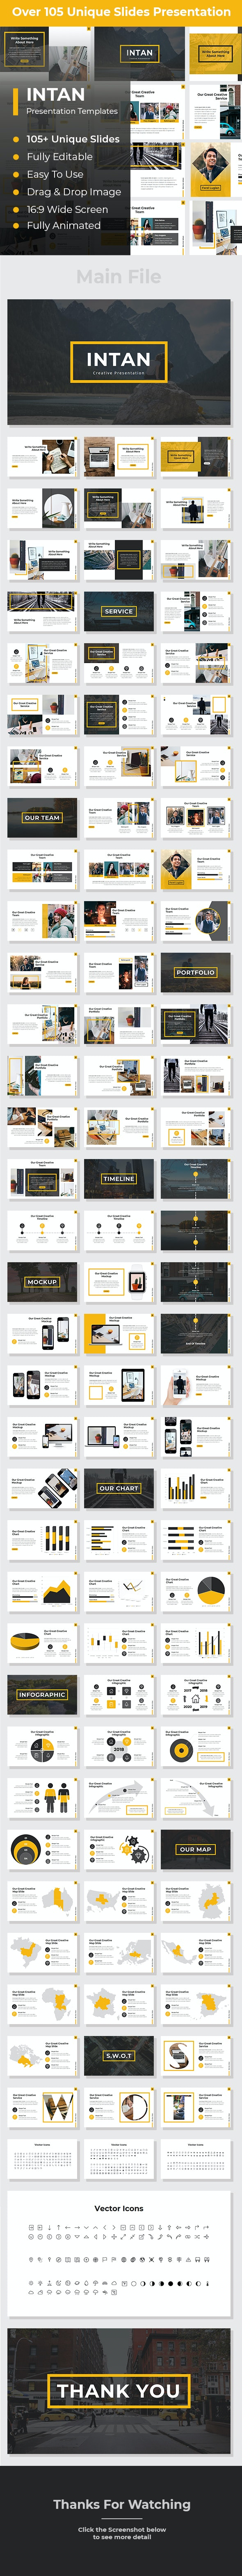 Intan Creative PowerPoint - Creative PowerPoint Templates